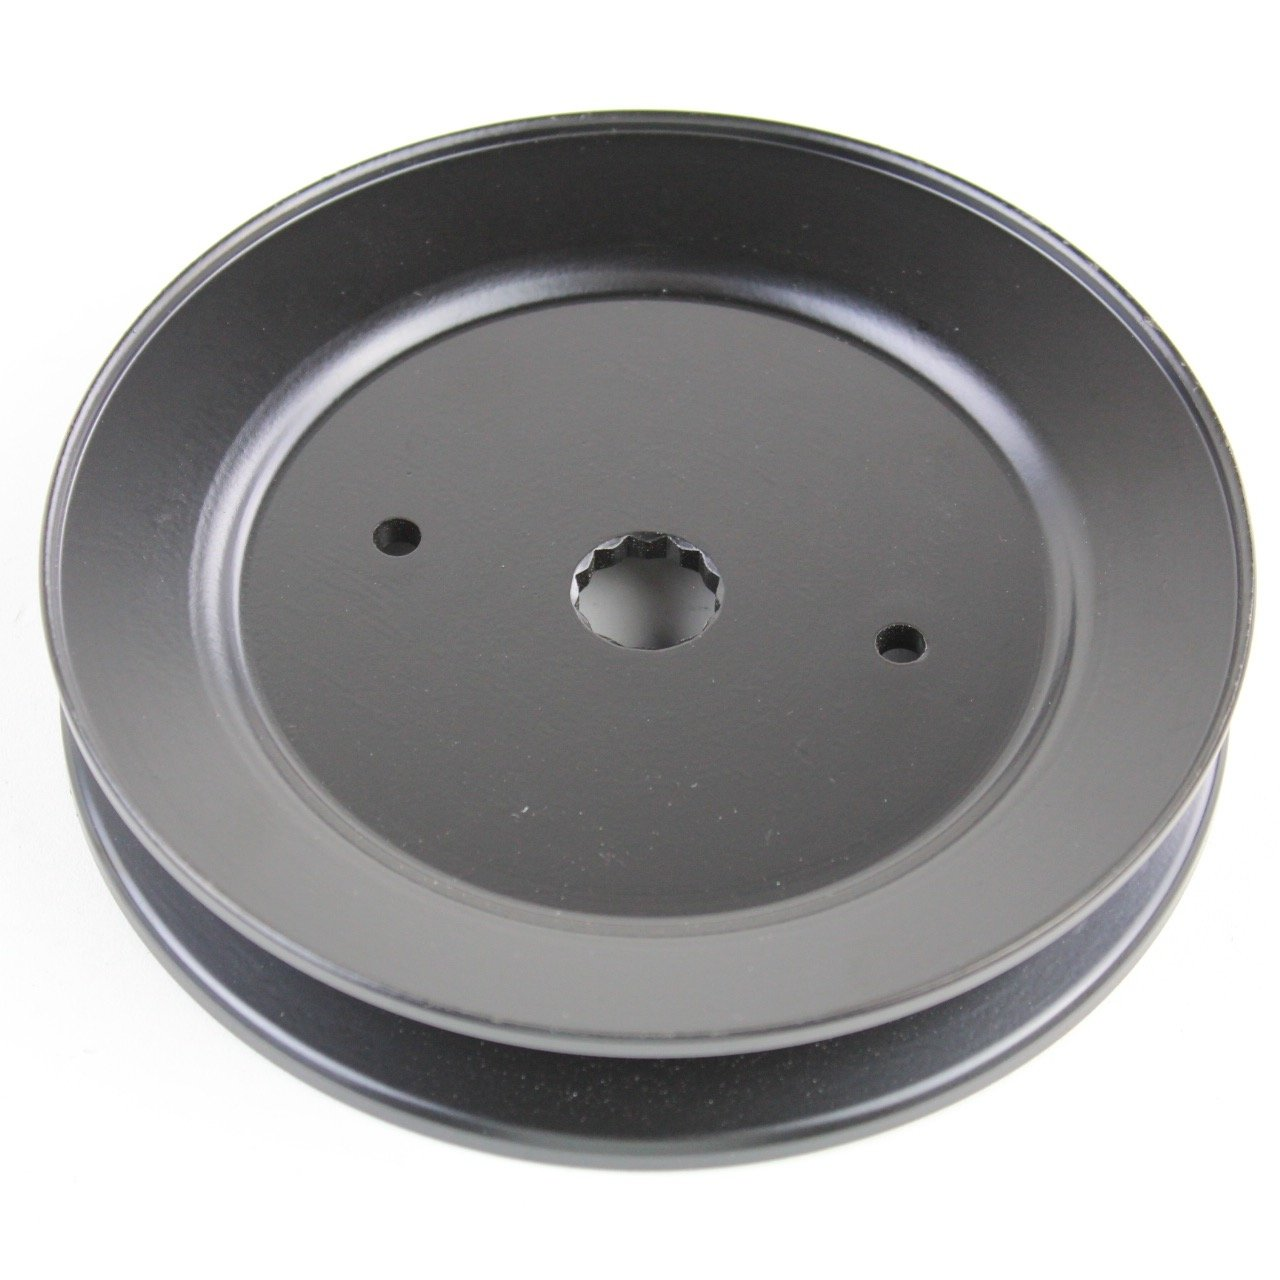 NICHE Spindle Pulley for Ariens 21546127 275-284 ID 0.64 OD 5 1/8 Niche Industries